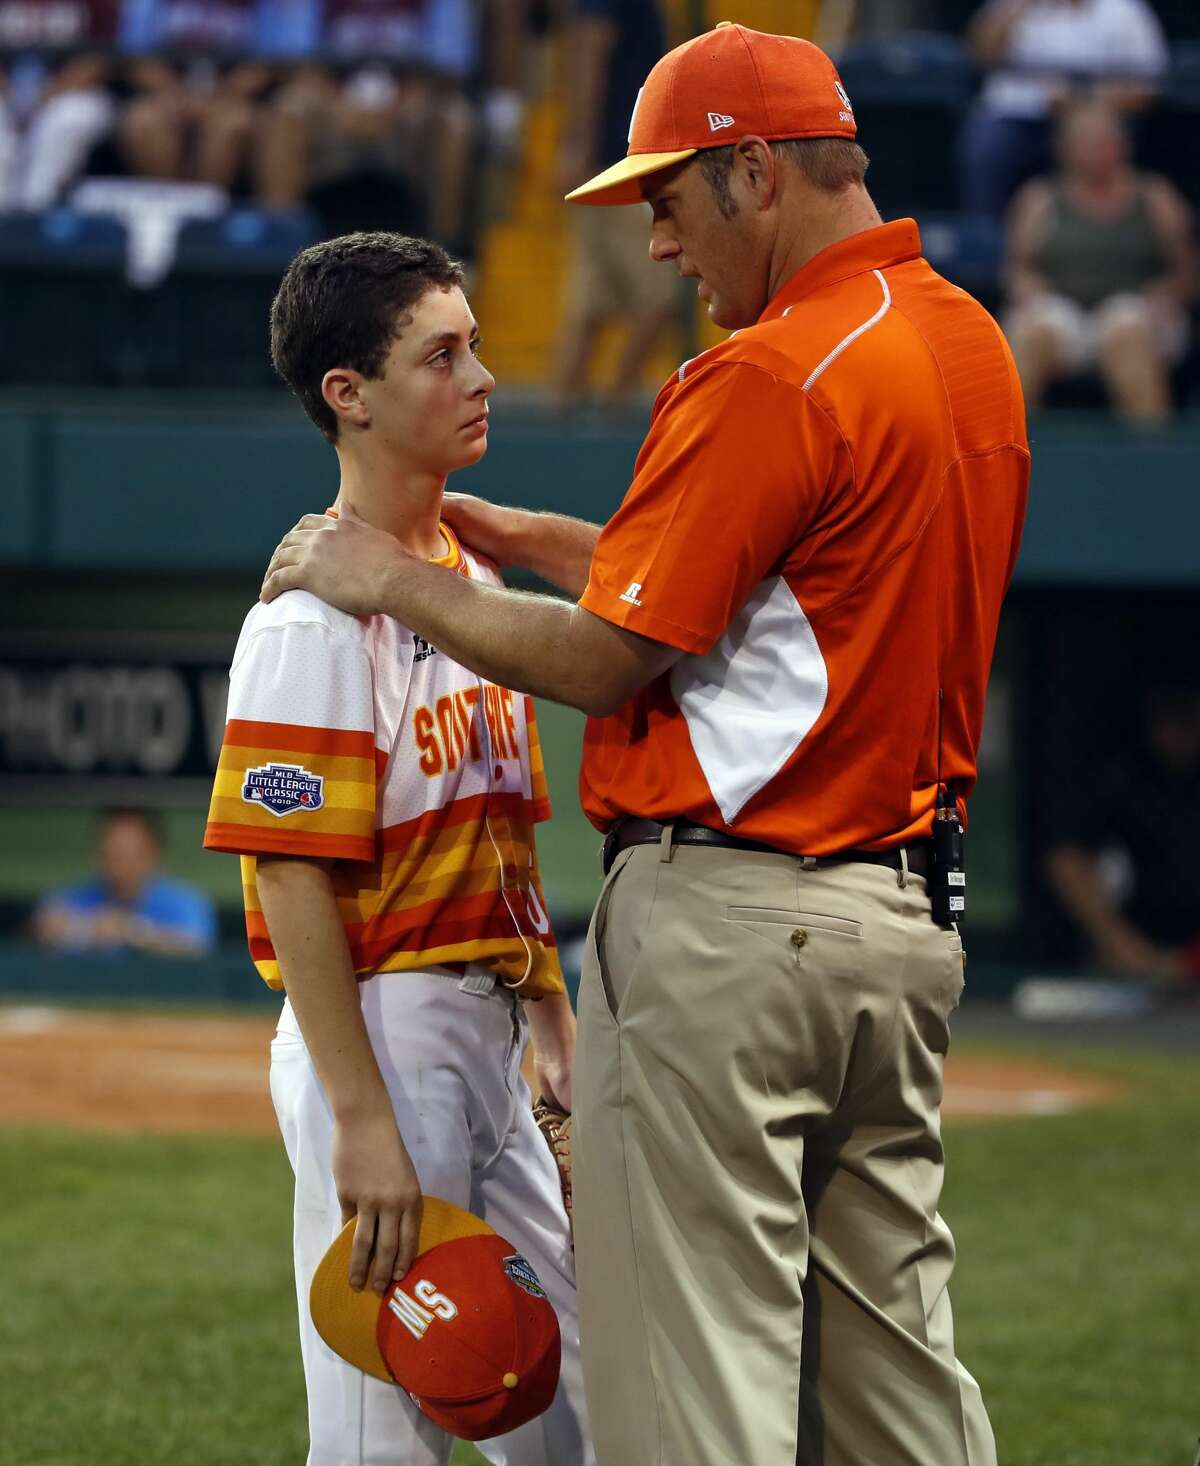 Houston, Texas pitcher Carter Pitts, left, listens to manager Dave Rook after after committing a fielding error, allowing a run to score, in the first inning of a baseball game against Coventry, Rhode Island in United States pool play at the Little League World Series tournament in South Williamsport, Pa., Thursday, Aug. 16, 2018. Texas won 3-1. (AP Photo/Gene J. Puskar)